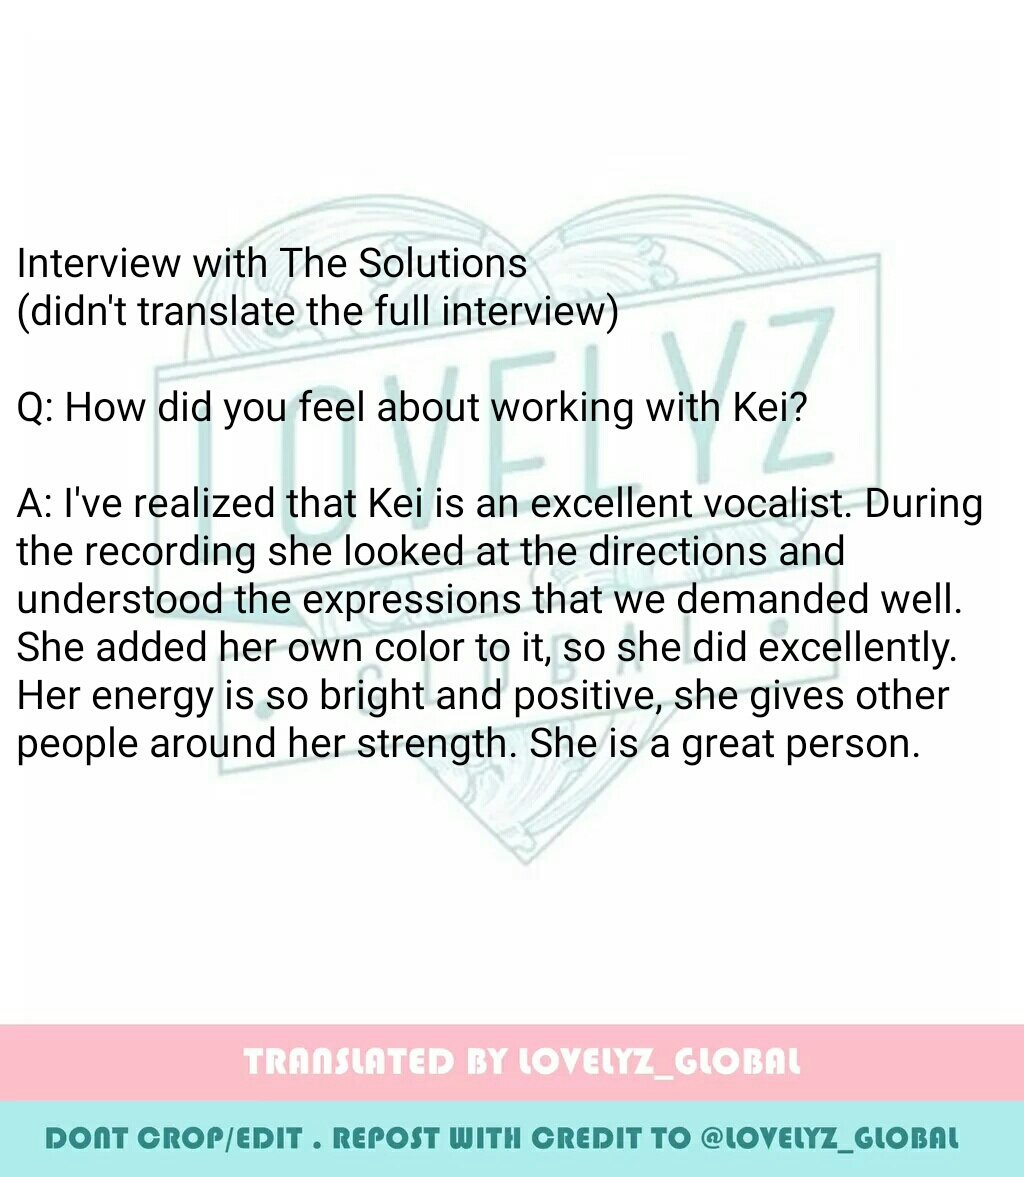 lovelyz global on trans kei x the solutions beautiful retweets 125